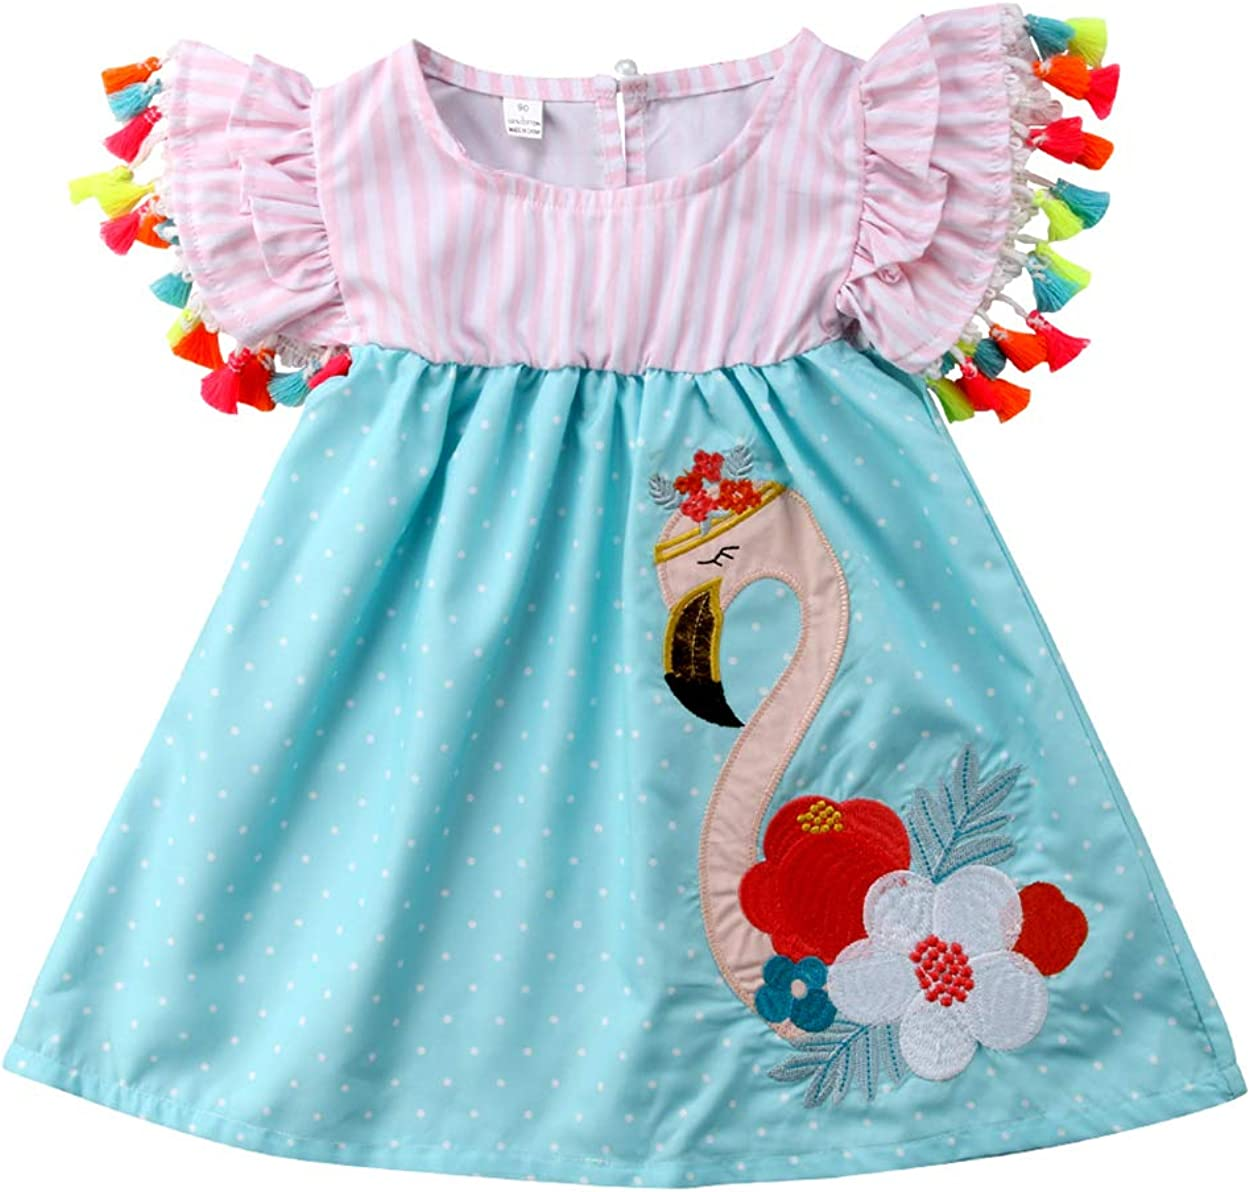 AMILIEe Swan Printed Toddler Infant Kids Girls Flamingo Summer Vacation Flounce Ruffle Tassels Dress Sundres Clothes for 1-6T